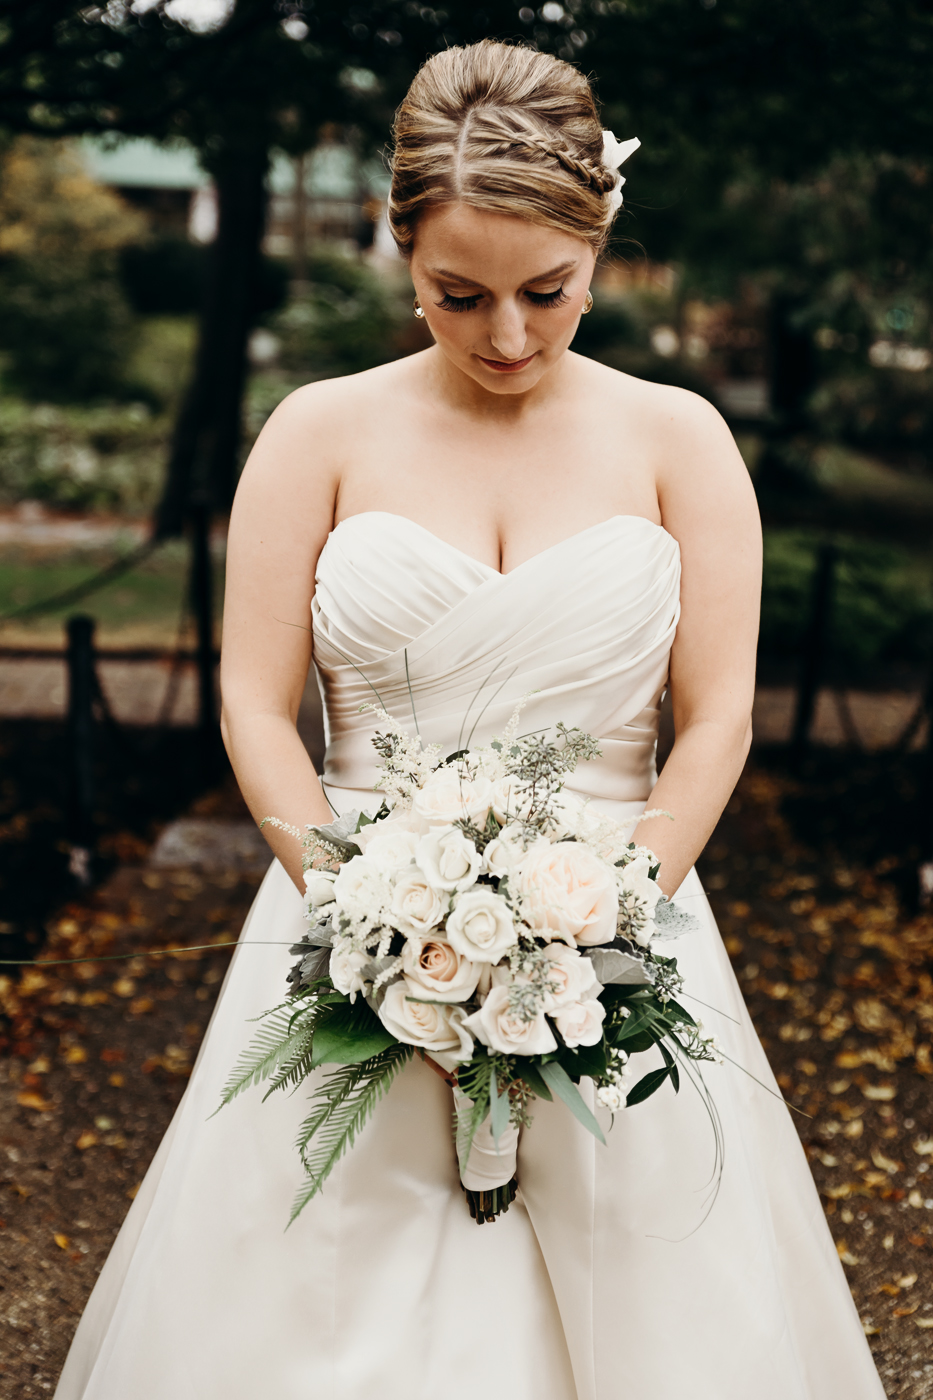 Bride looks down at her bouquet